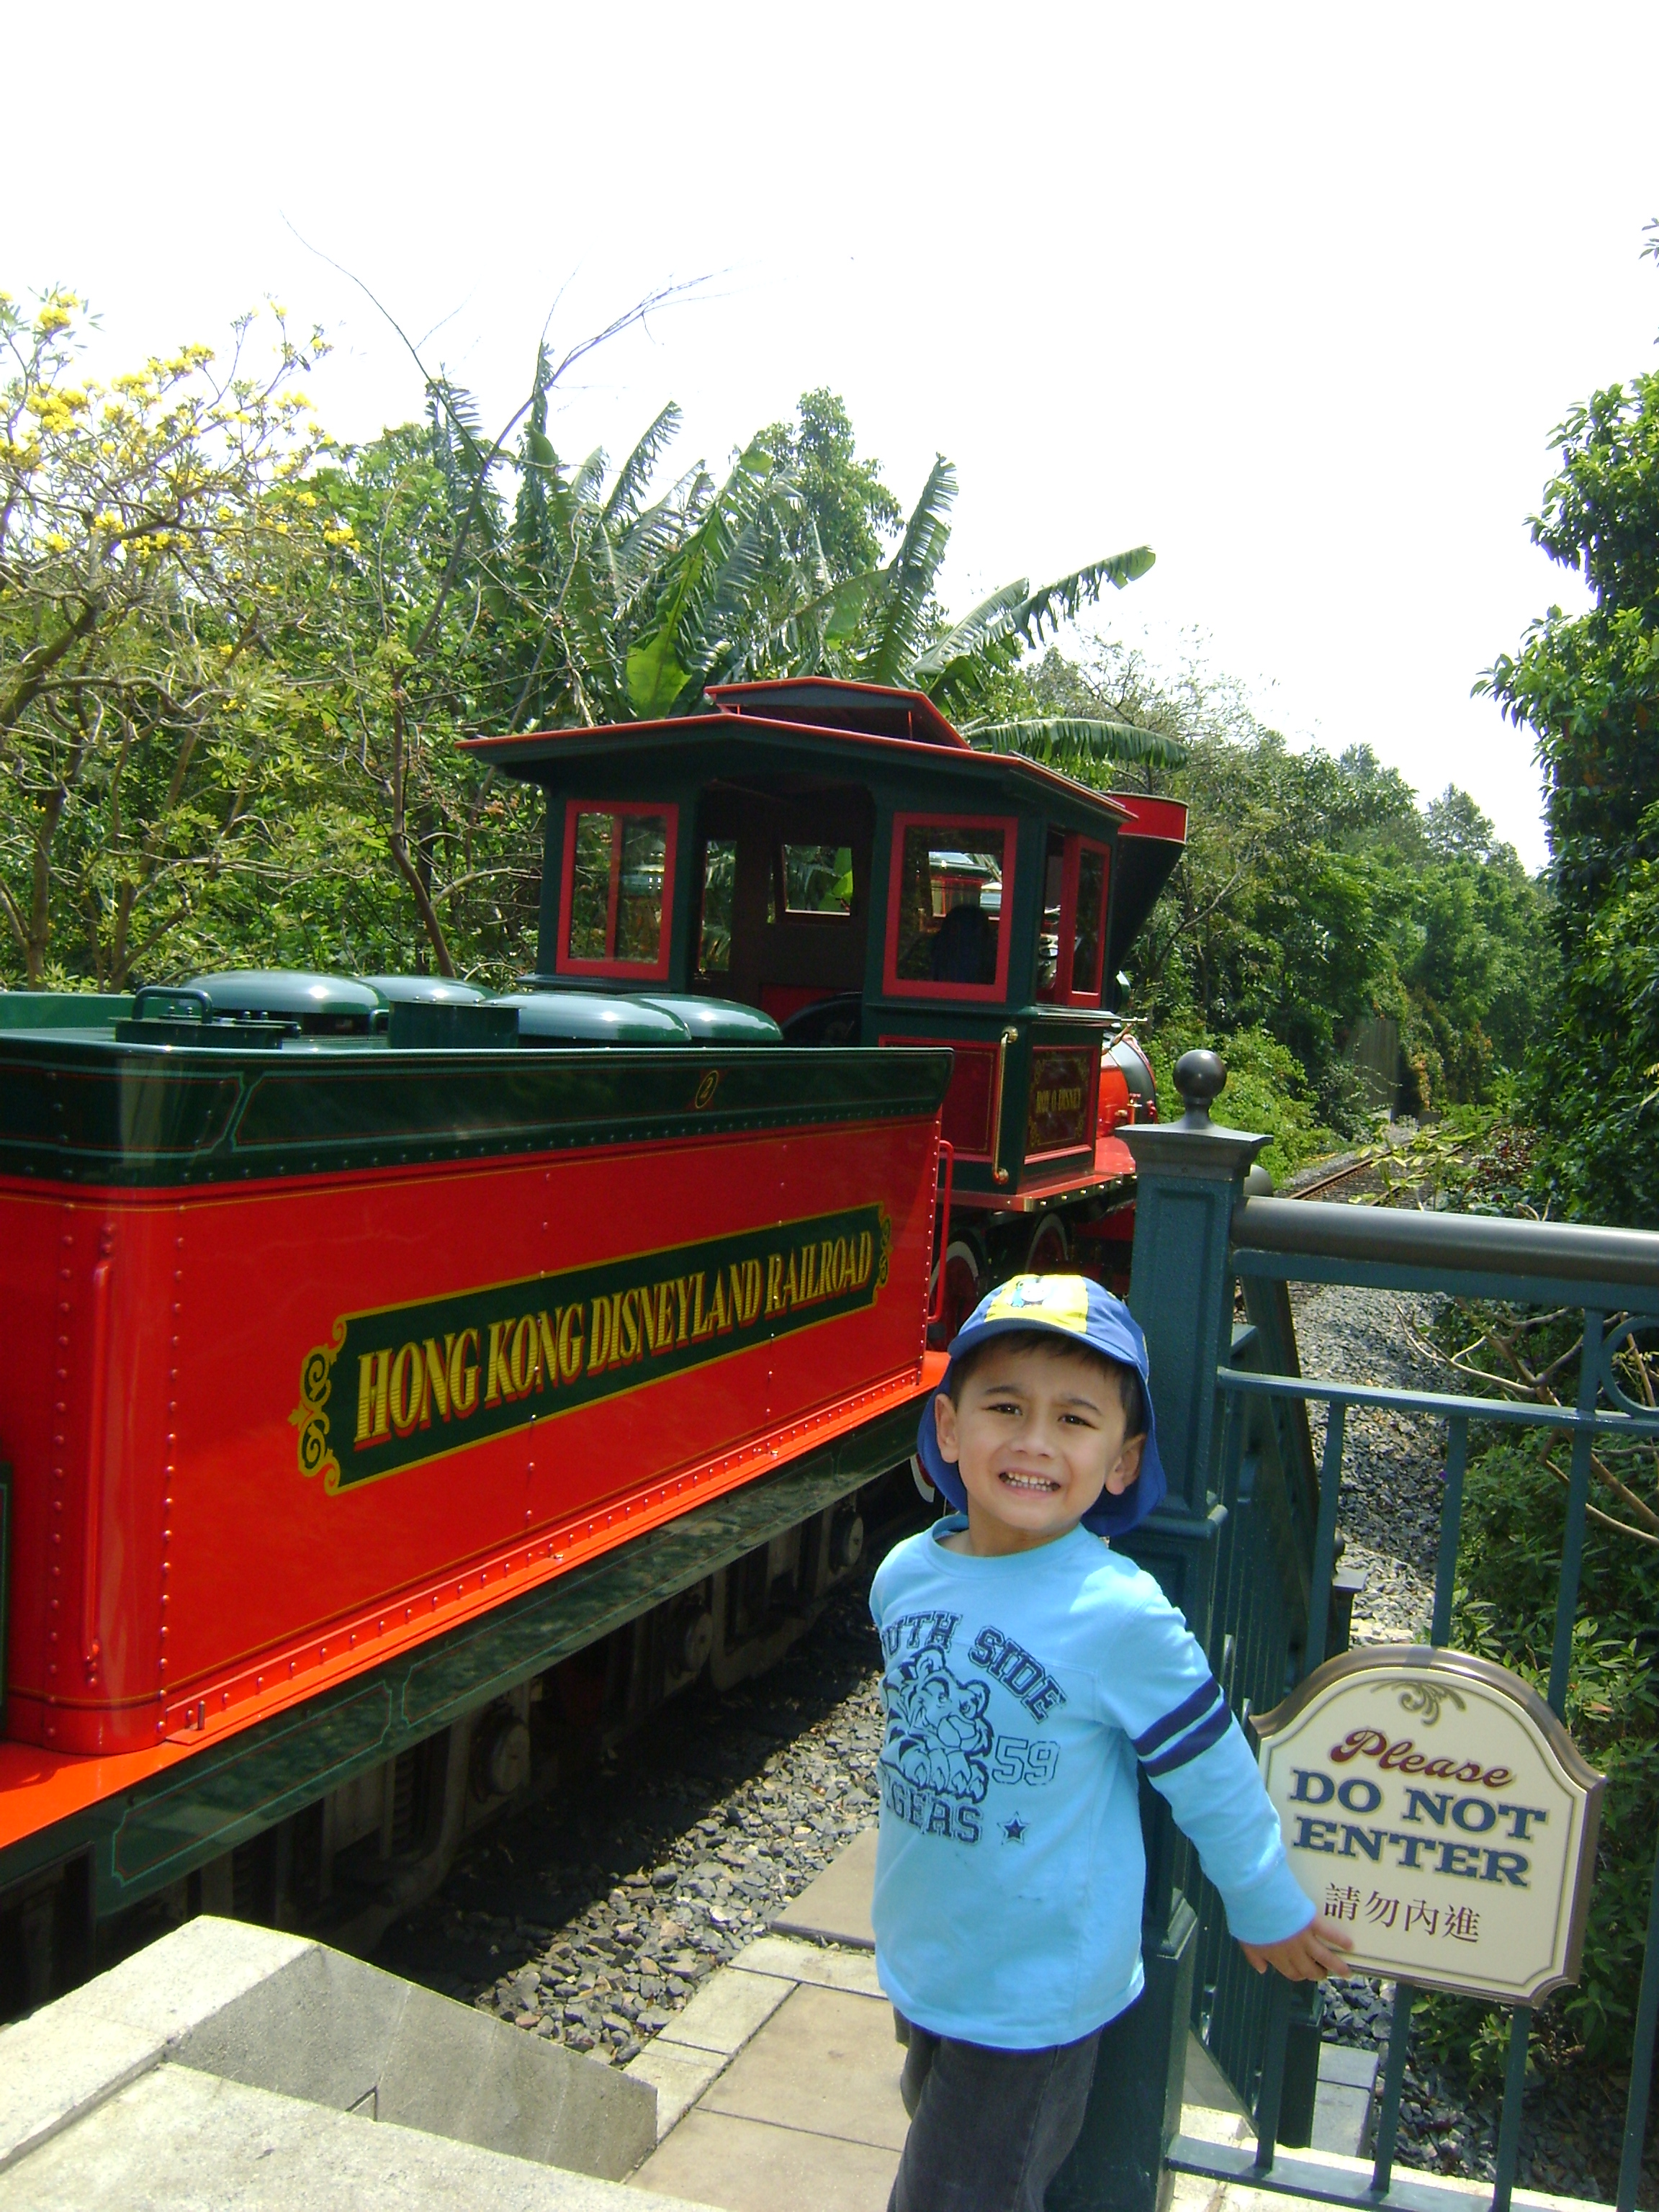 Hongkong Disneyland train